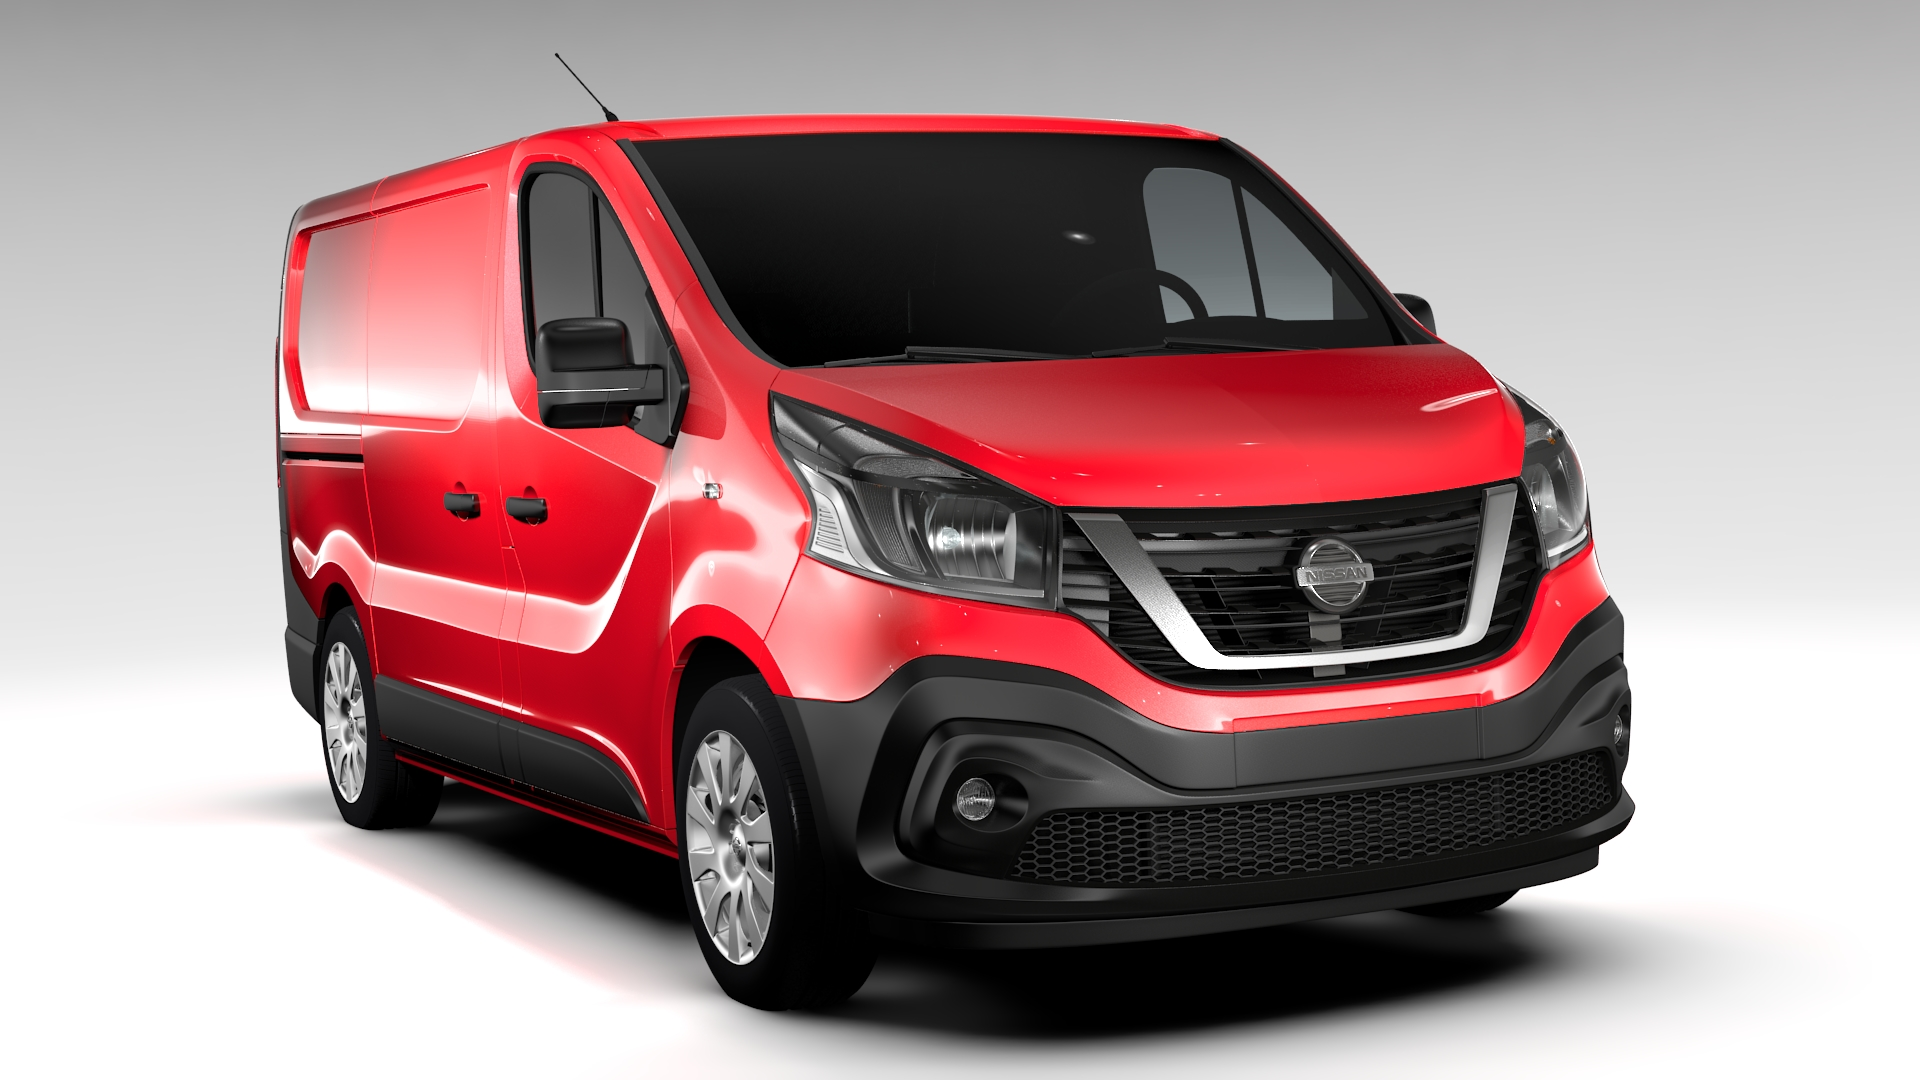 nissan nv300 van 2016 3d model buy nissan nv300 van 2016 3d model flatpyramid. Black Bedroom Furniture Sets. Home Design Ideas